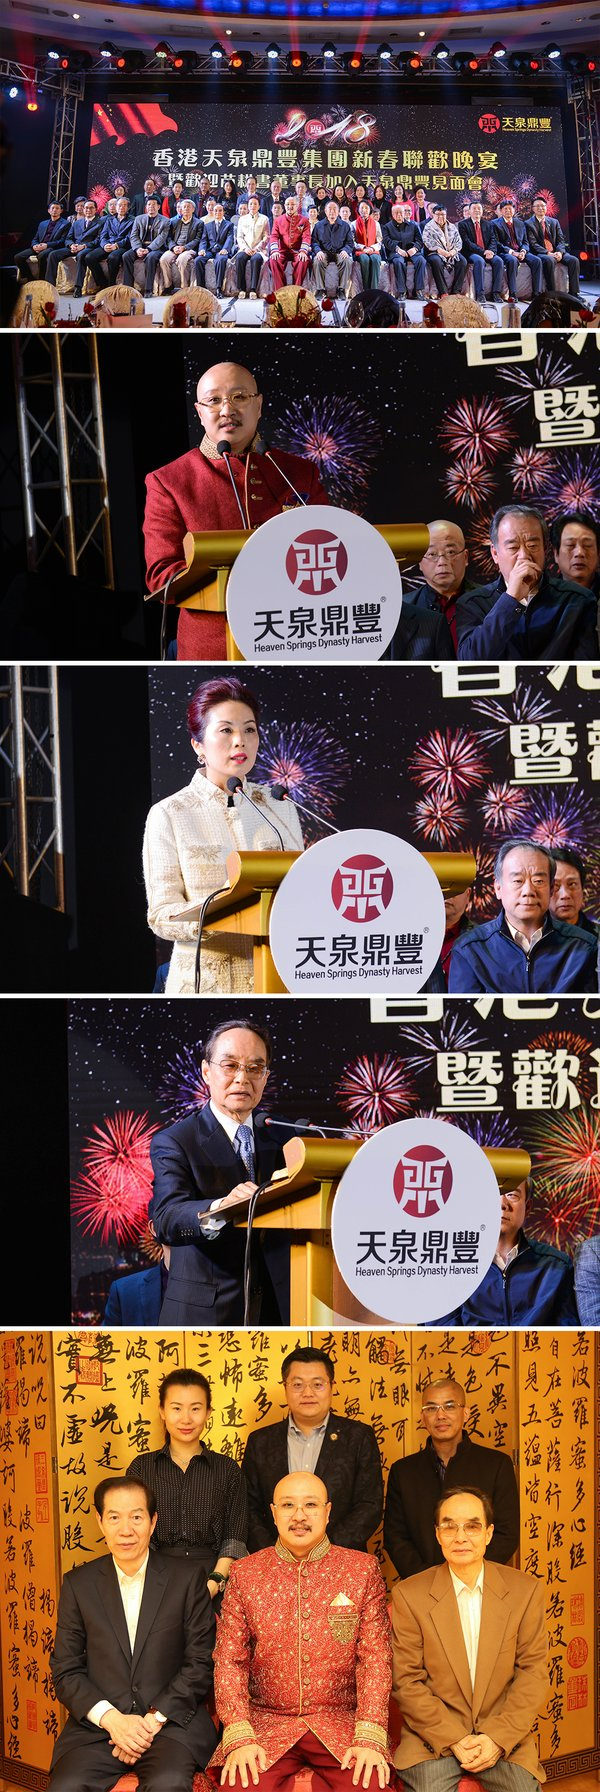 Photos of Datoa�� Sri Prof. Ng, Tat-yung, Datin Sri Dr. Ng, Tsz-yan Irys, Mr. Miao Gengshu, and Dr. Lo, Man-tuen